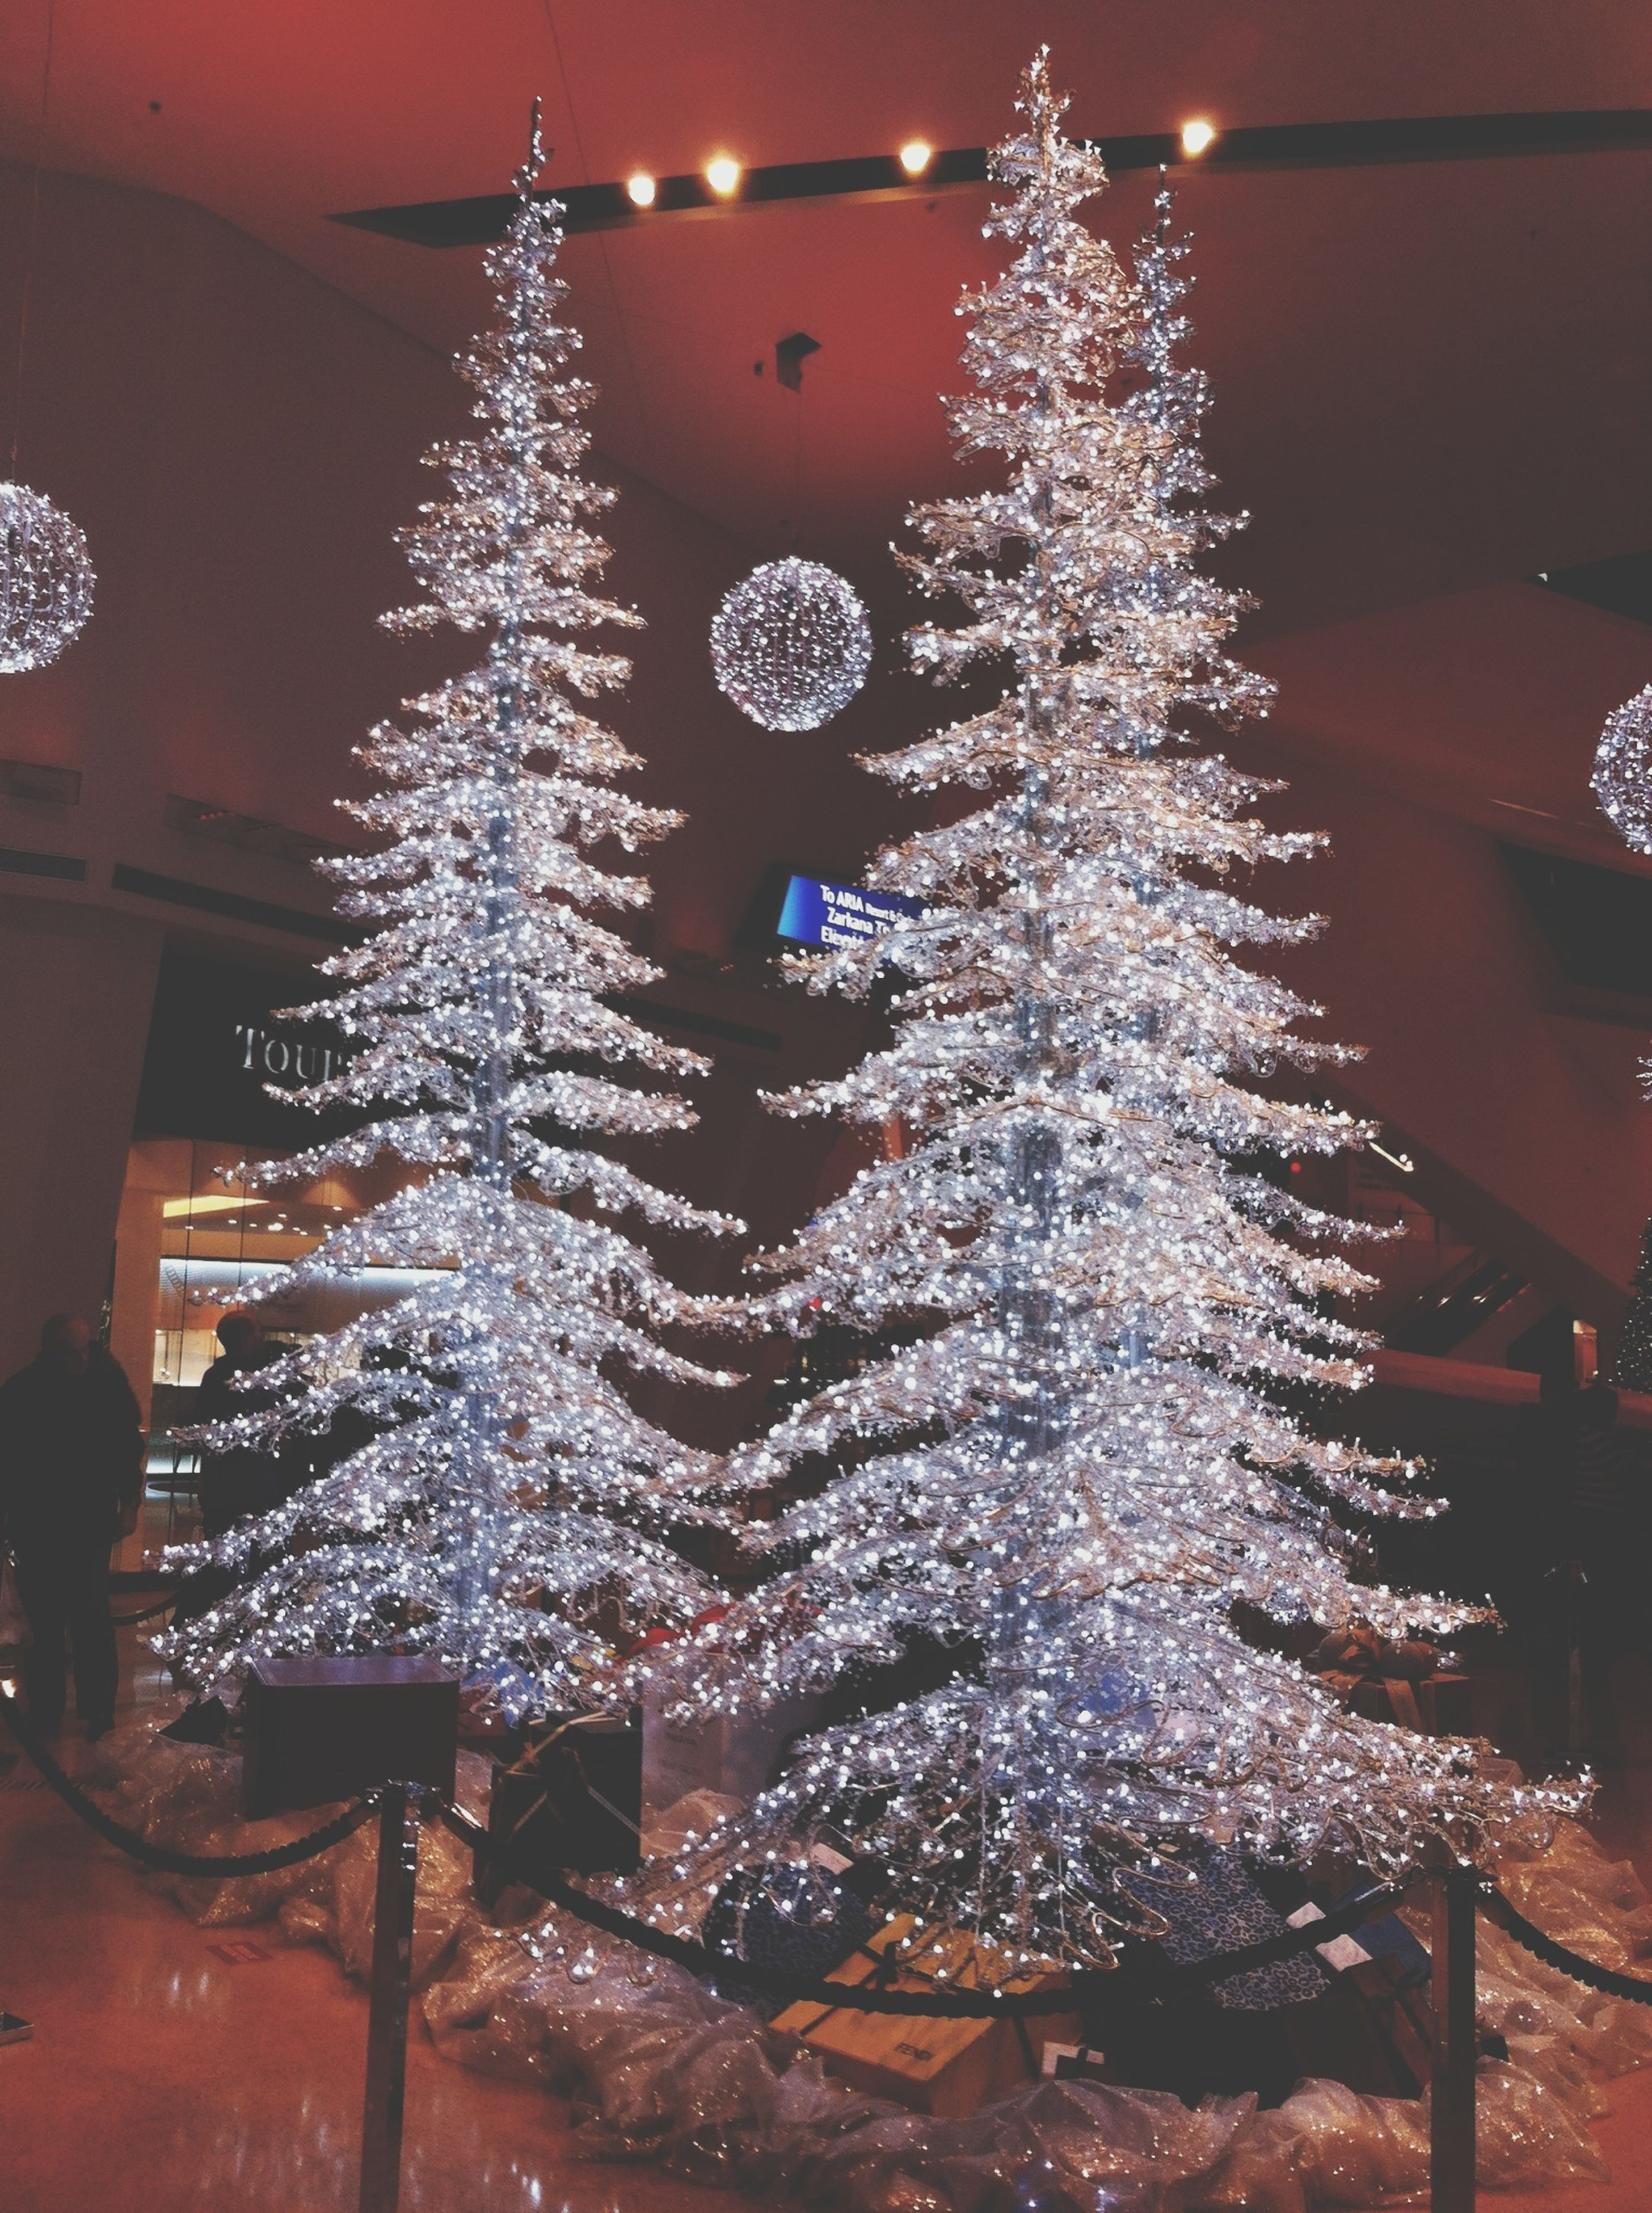 illuminated, decoration, hanging, lighting equipment, night, celebration, tradition, indoors, christmas, christmas decoration, cultures, low angle view, christmas lights, christmas tree, arts culture and entertainment, close-up, glowing, chandelier, no people, motion